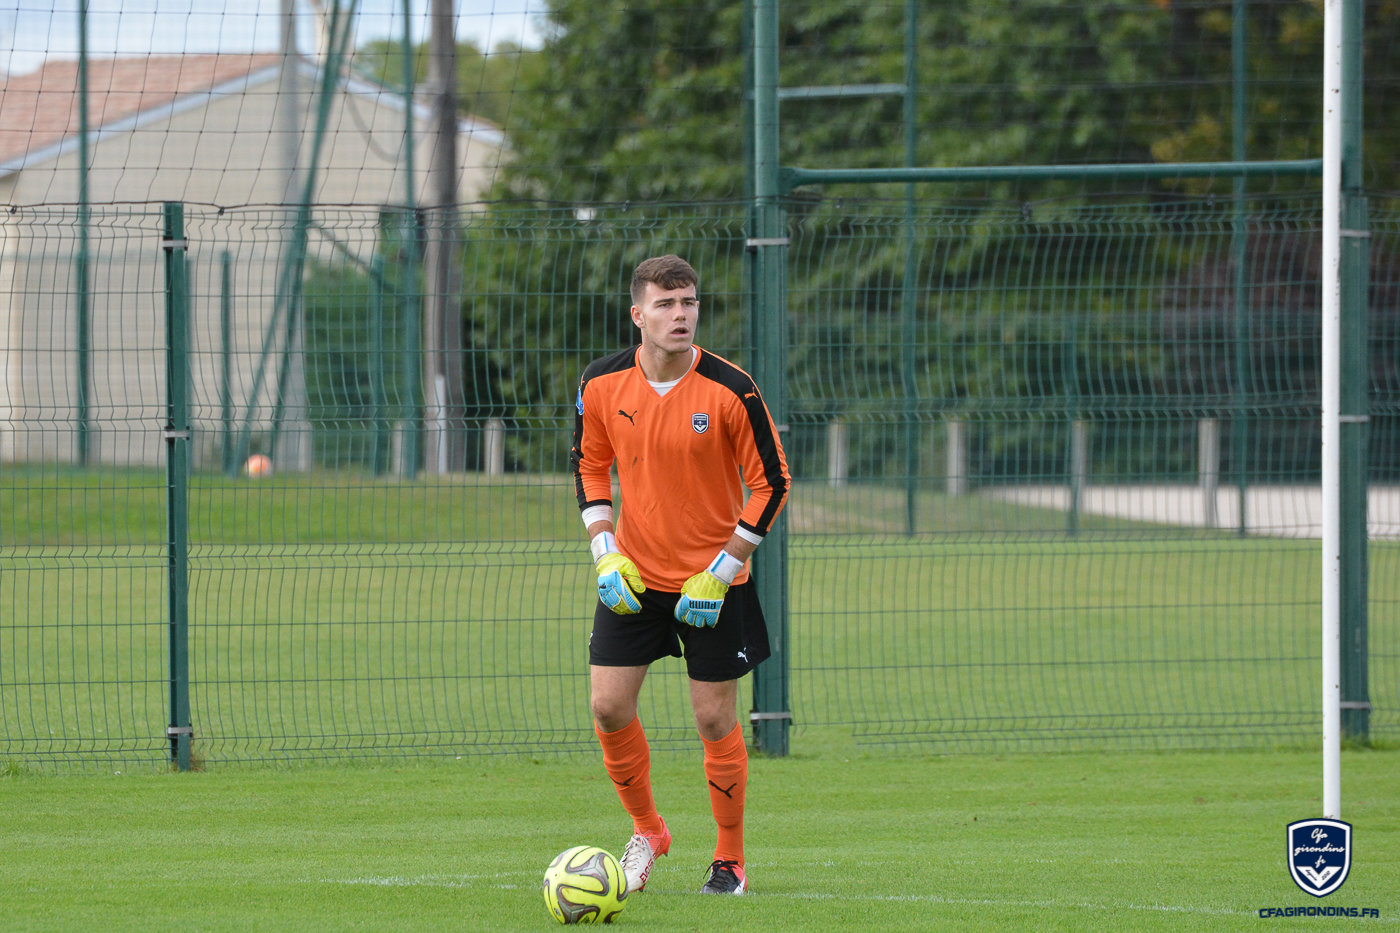 Cfa Girondins : Poussin, Youssouf et Romil en stage avec les pros - Formation Girondins